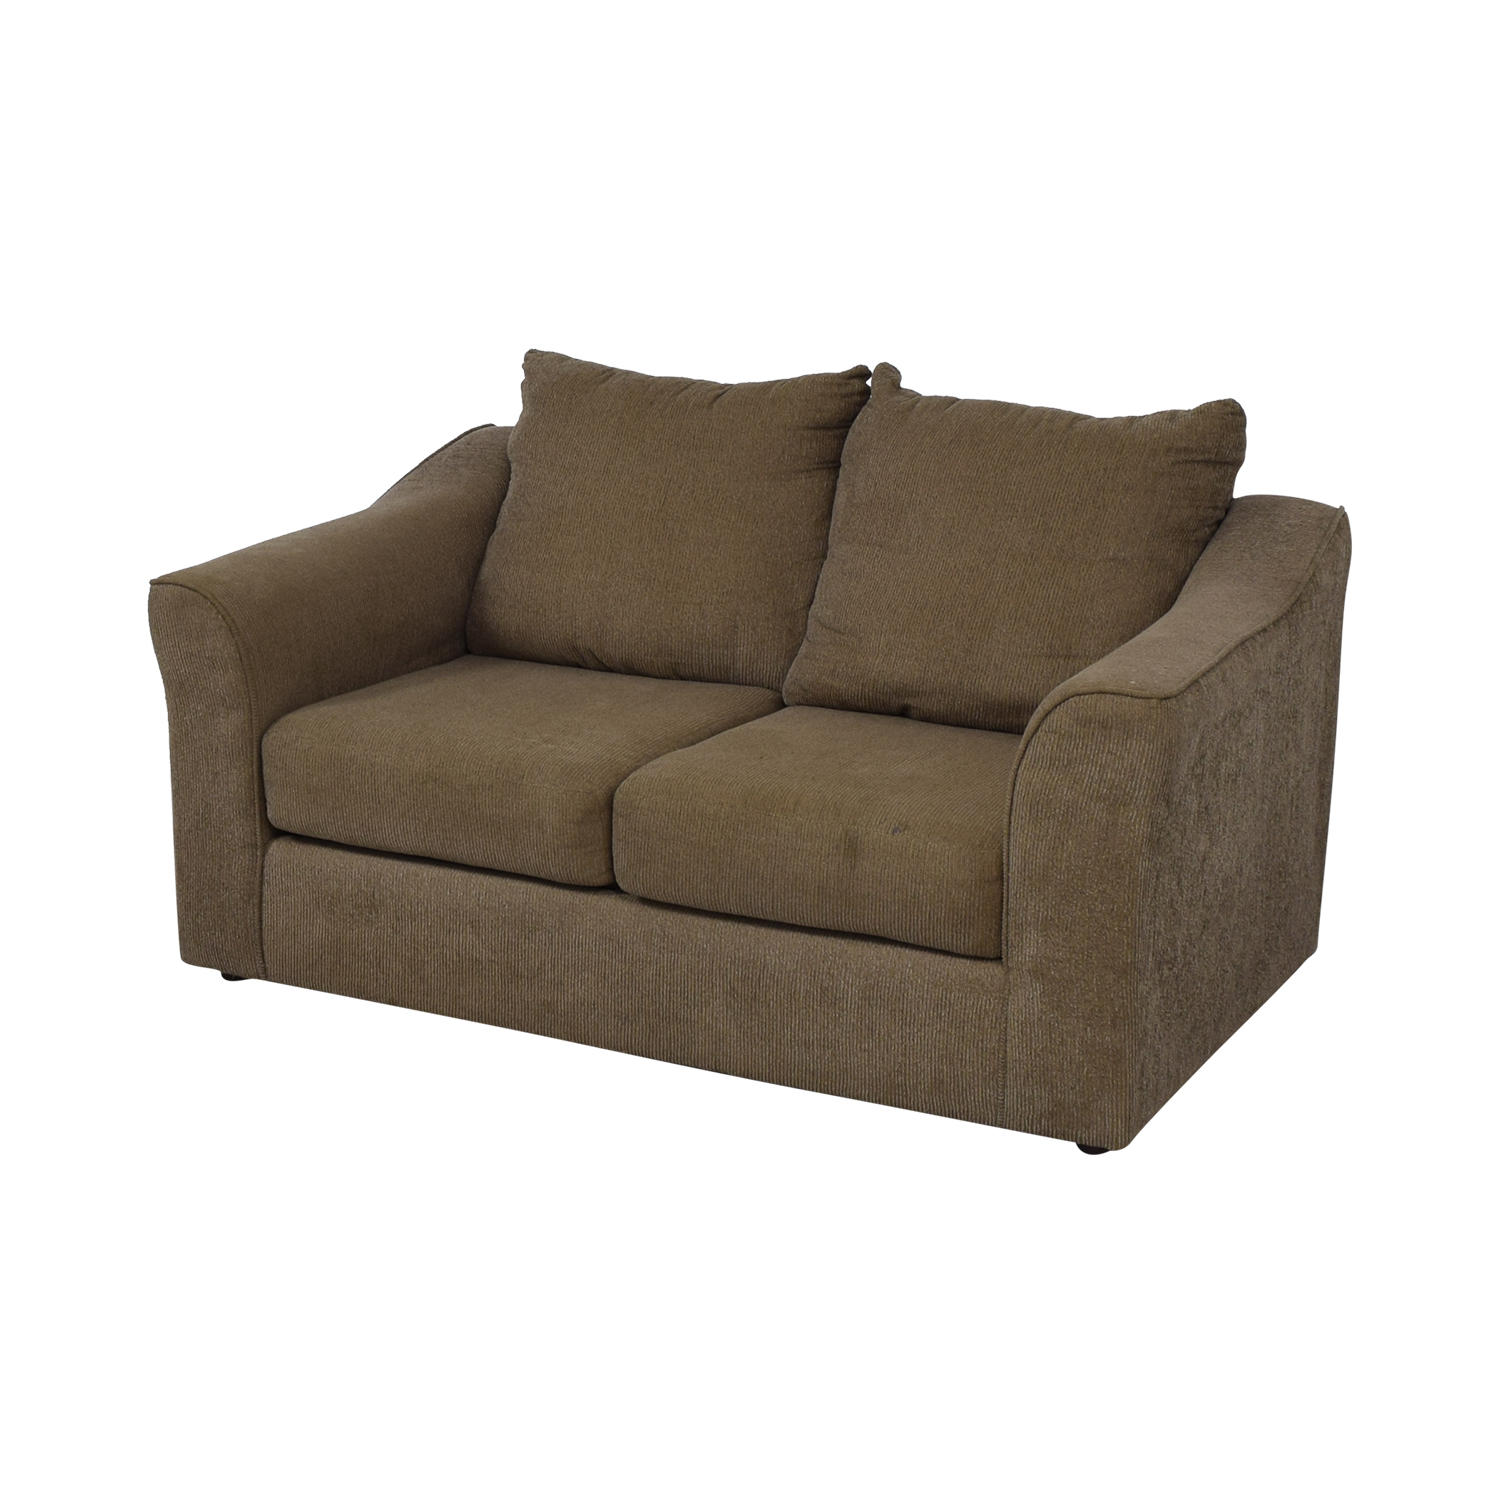 Hughes Furniture Hughes Furniture Brown Two-Cushion  Loveseat second hand